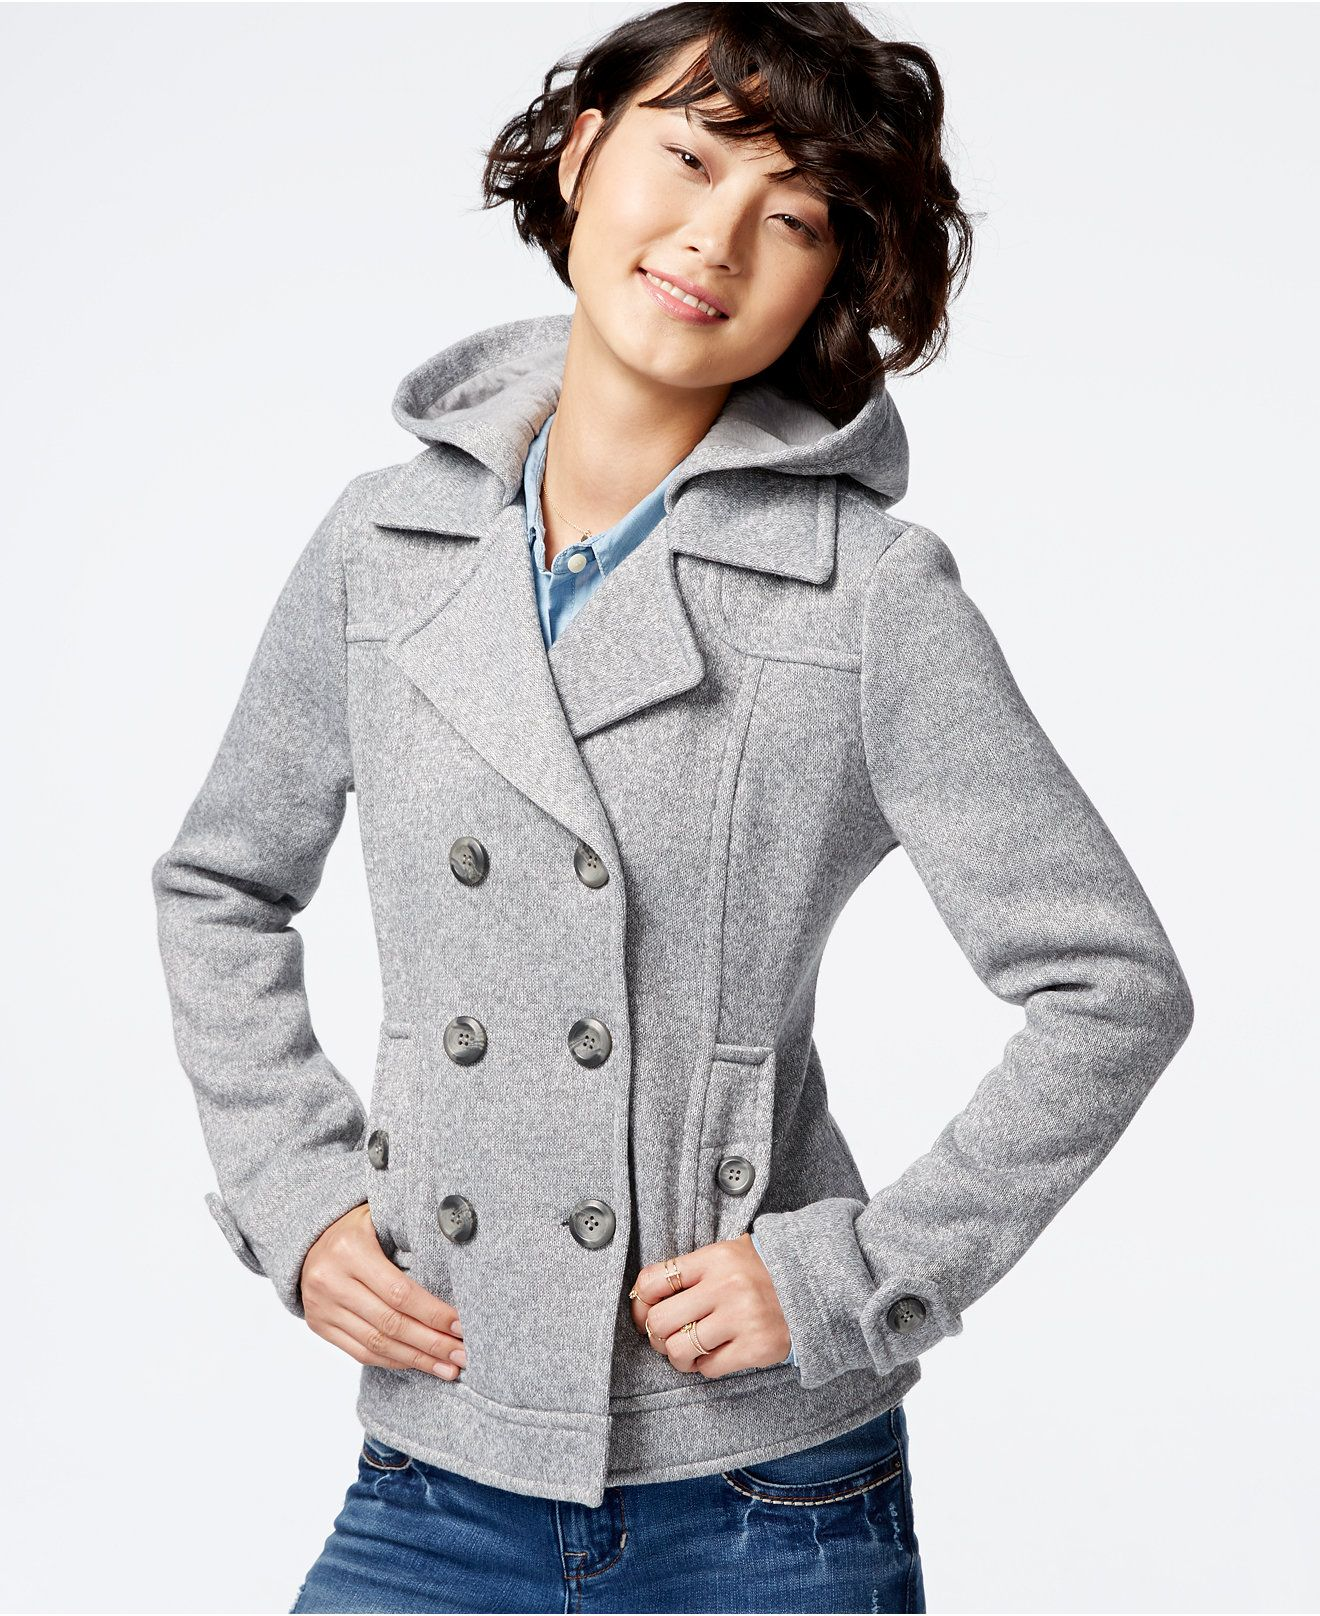 Sebby Hooded Peacoat - Coats - Women - Macy's